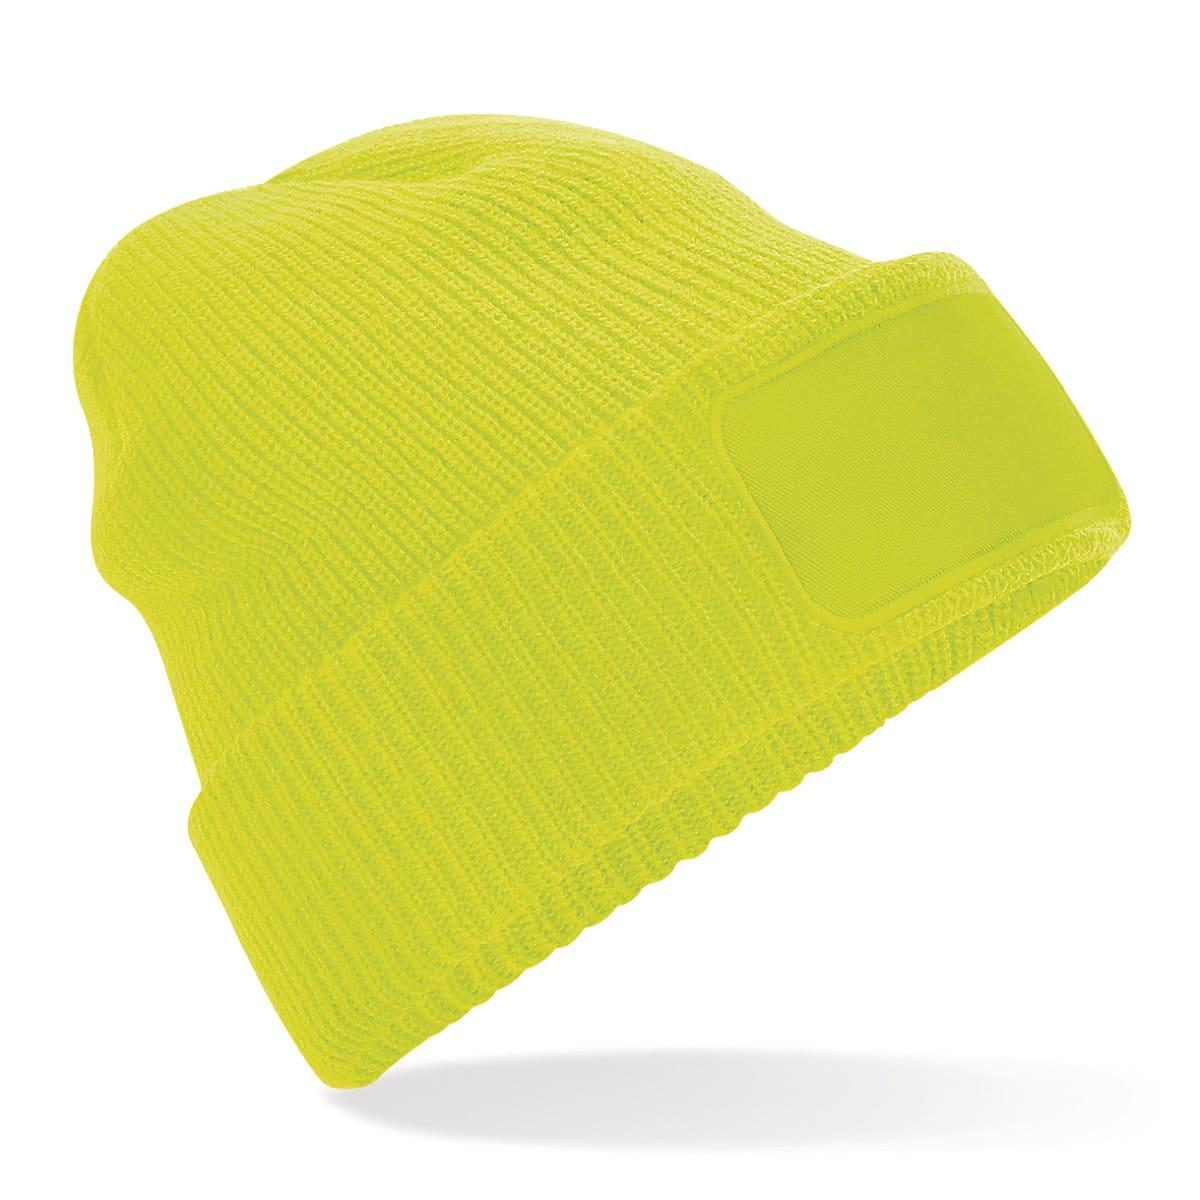 Beechfield Thinsulate Printer Beanie Hat in Fluorescent Yellow (Product Code: B440)